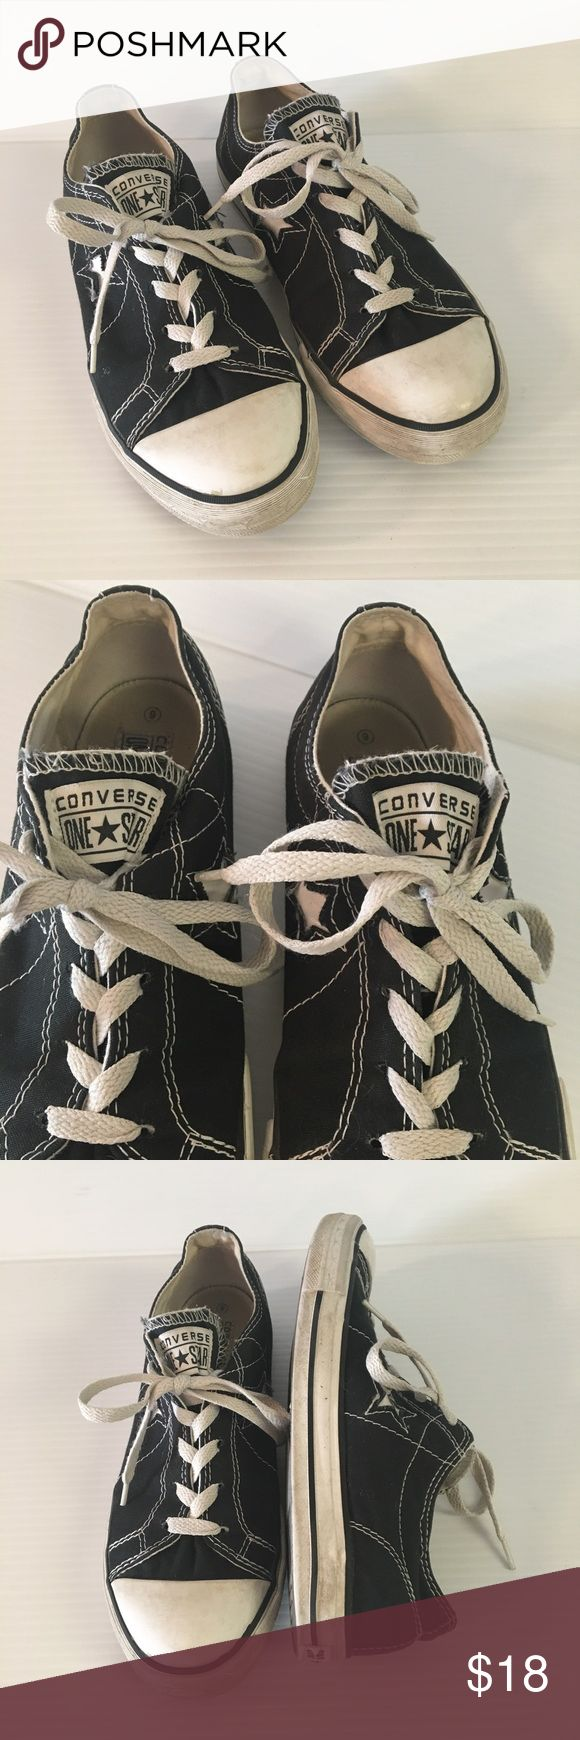 Converse One Star Shoes Junior Womens SZ 6 Black Converse One Star Shoes Junior Womens Size 6 Black Canvas Lace Up Low Top  In good pre-owned condition. Converse Shoes Sneakers